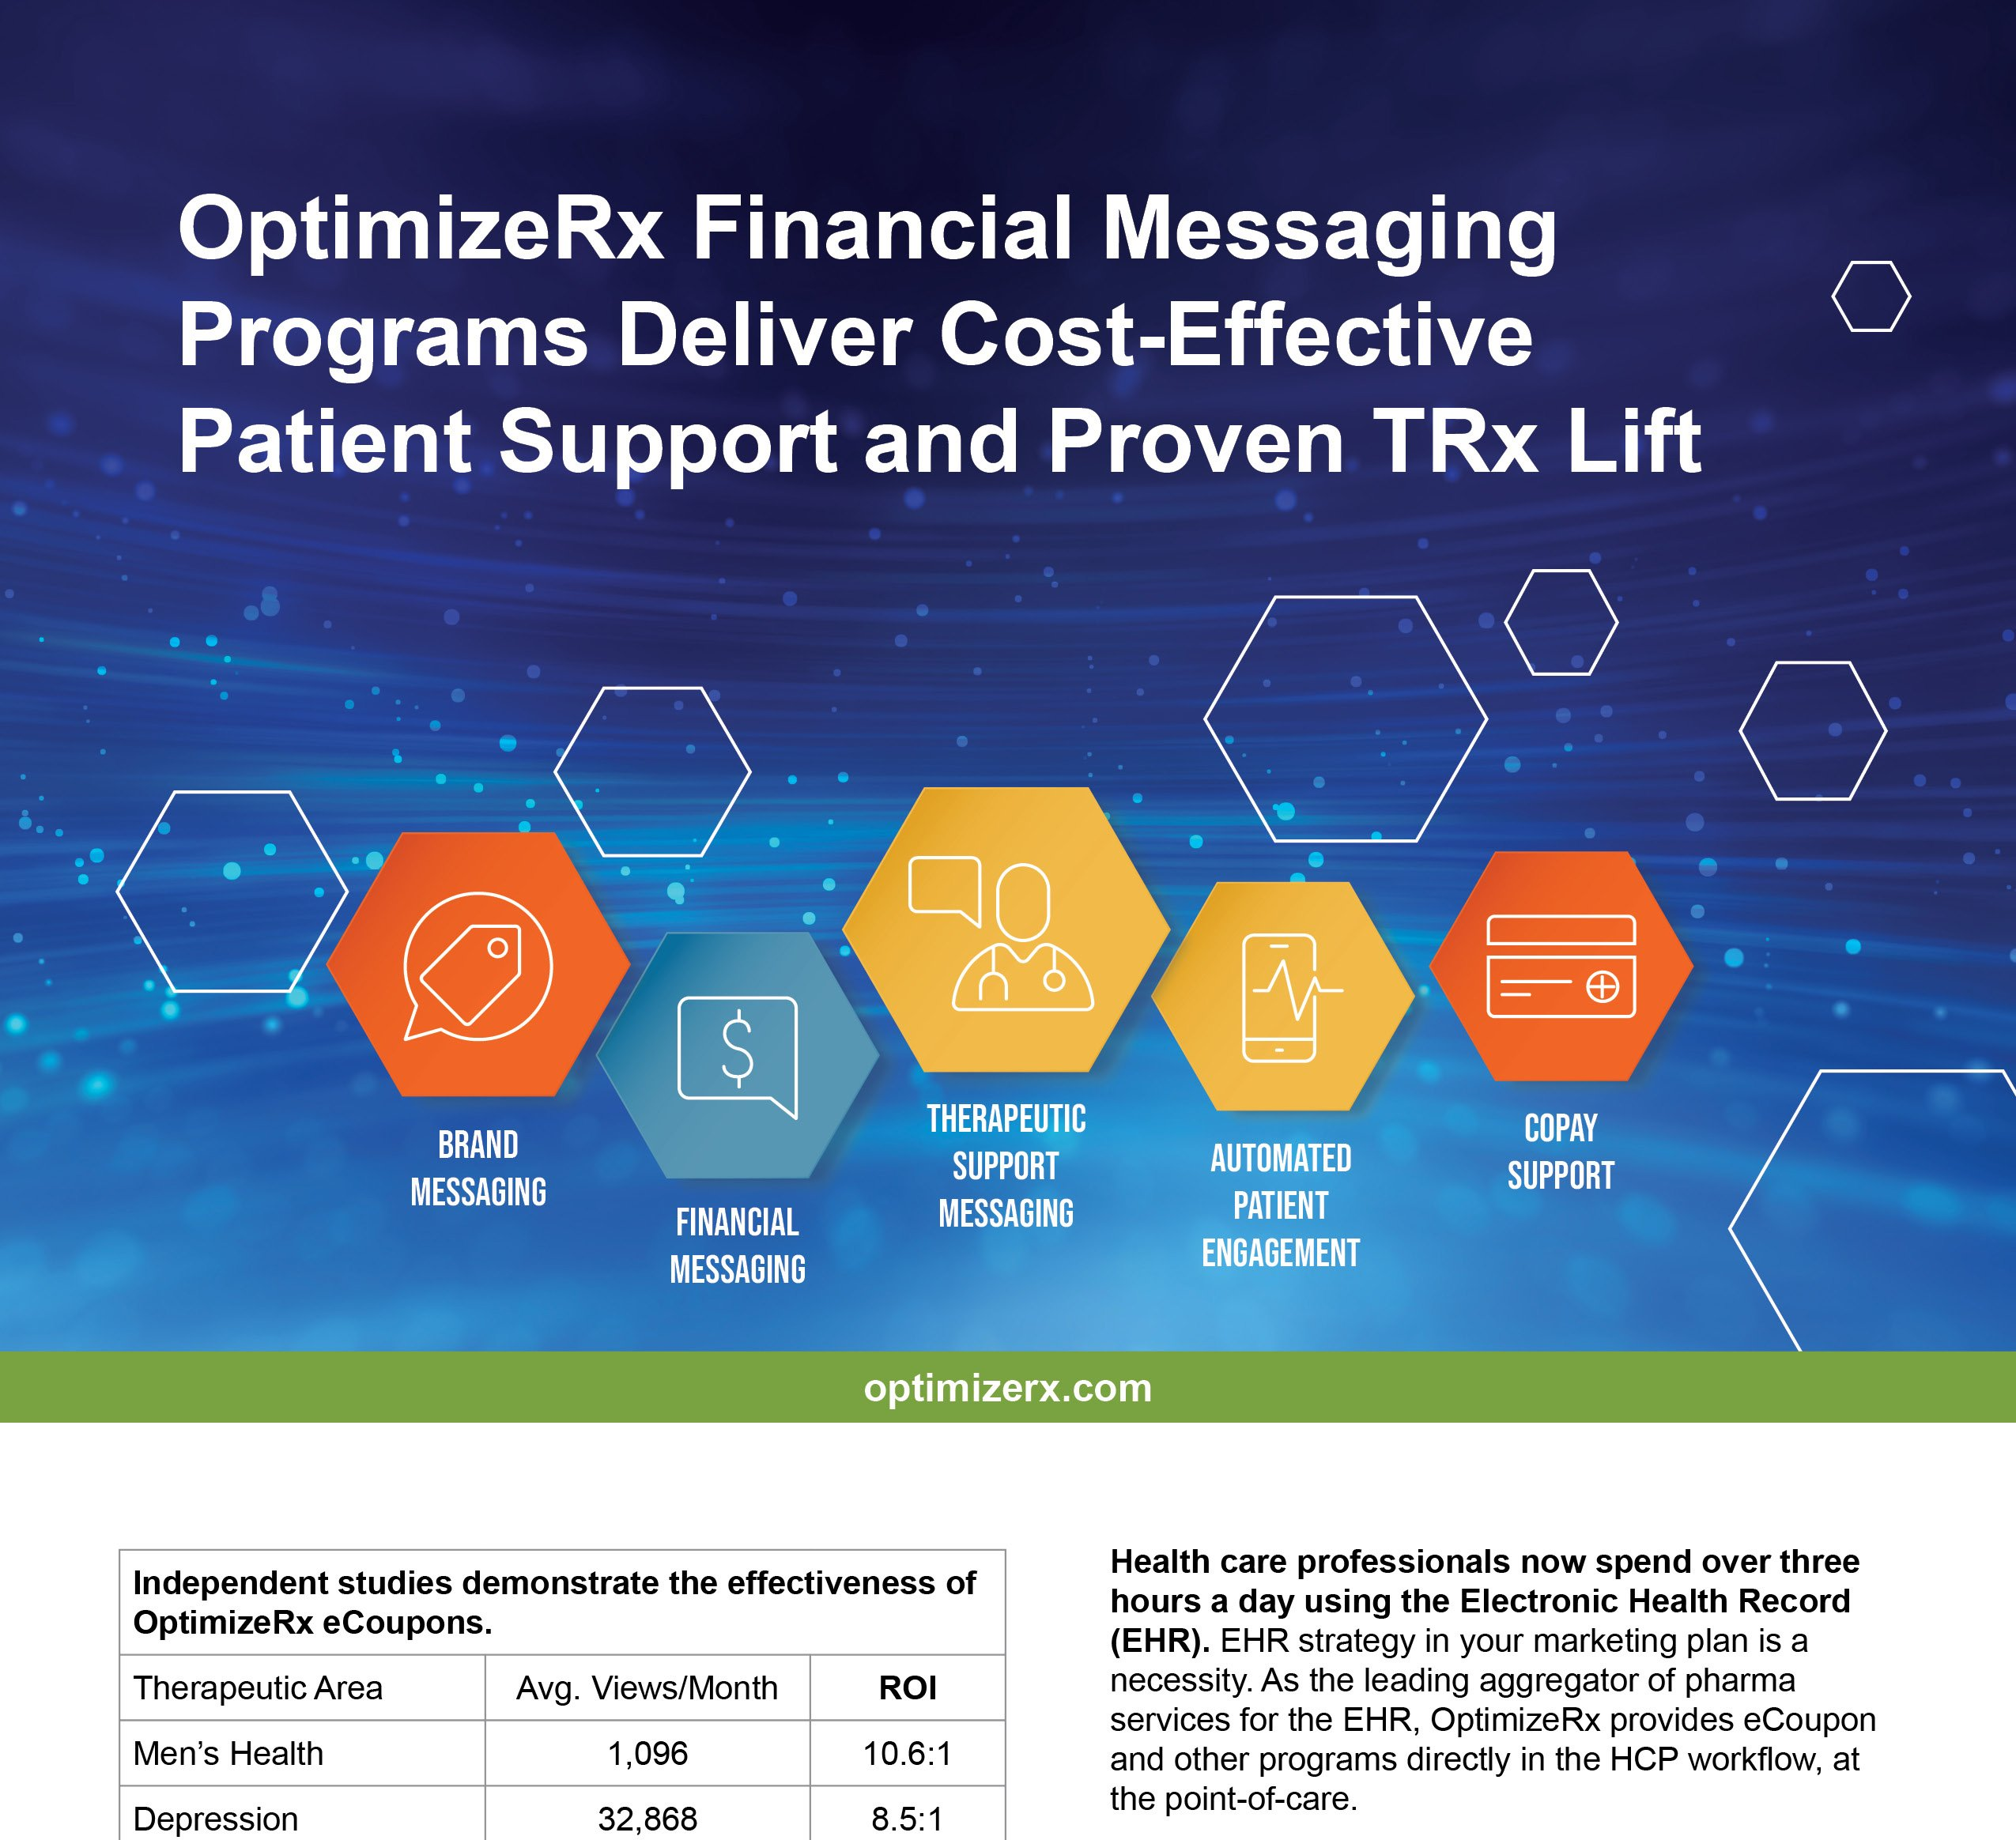 OPRX Financial Messaging Programs Deliver Cost Effective Patient Support